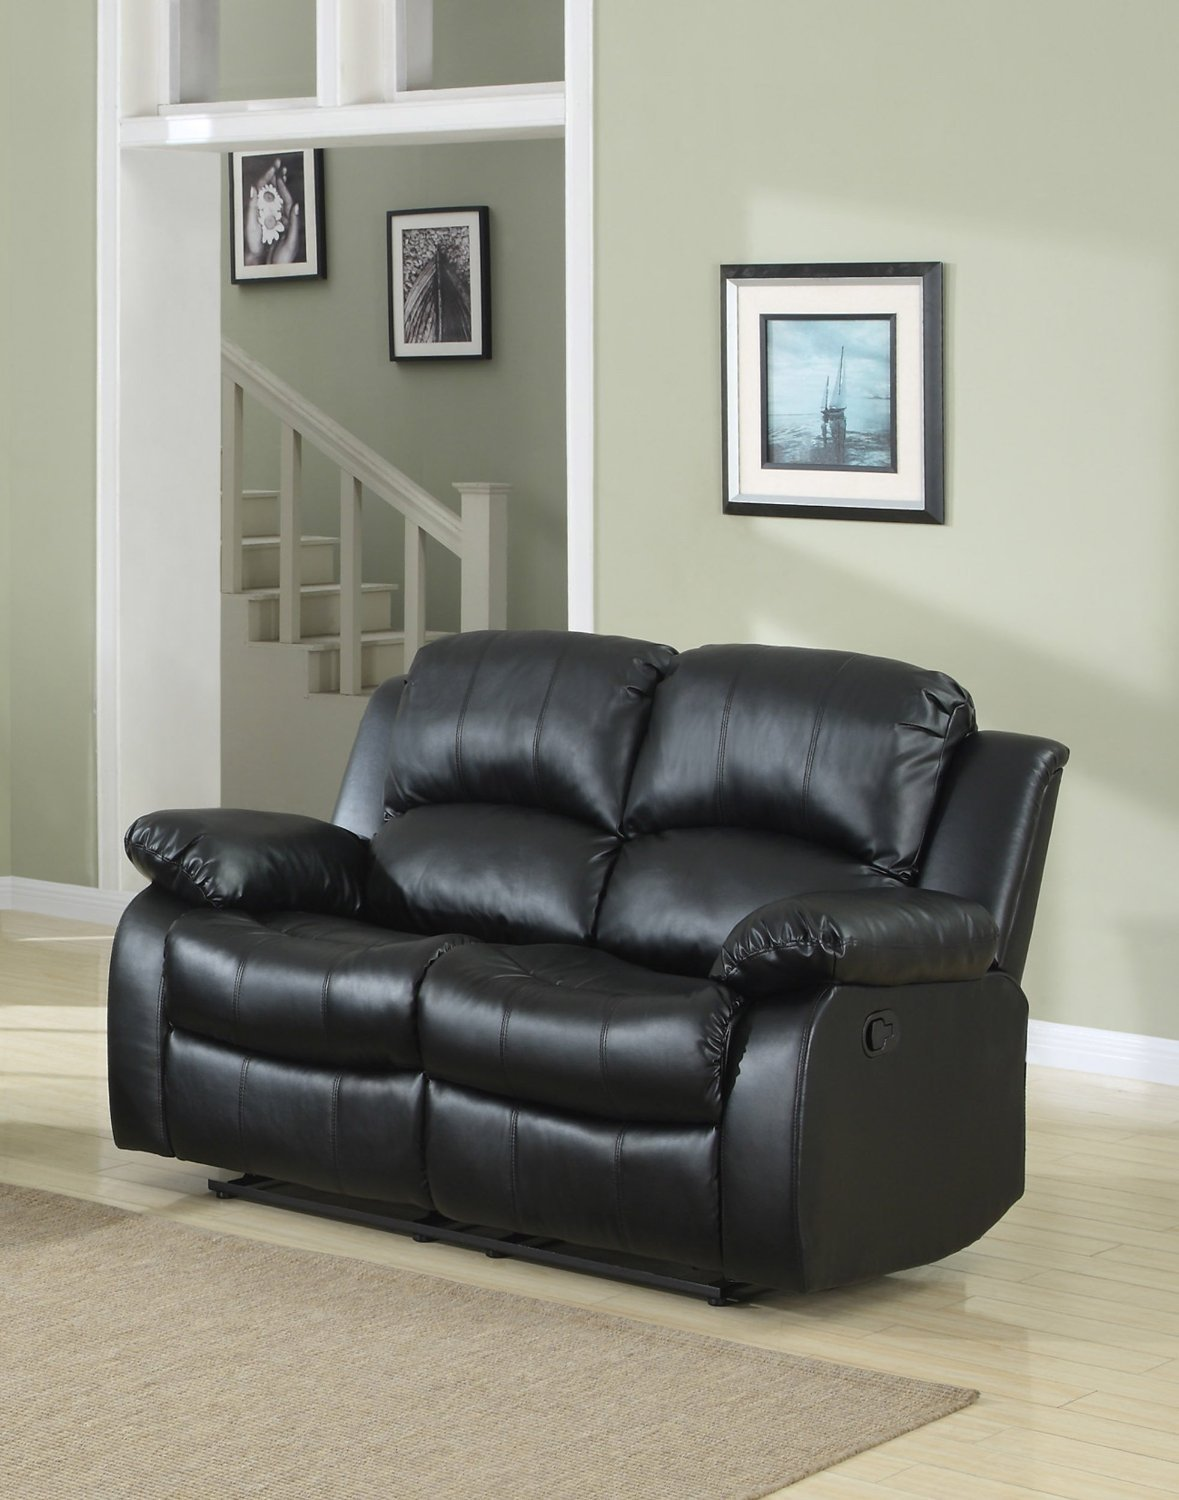 Elegant Double Reclining Loveseat Bonded Leather Living